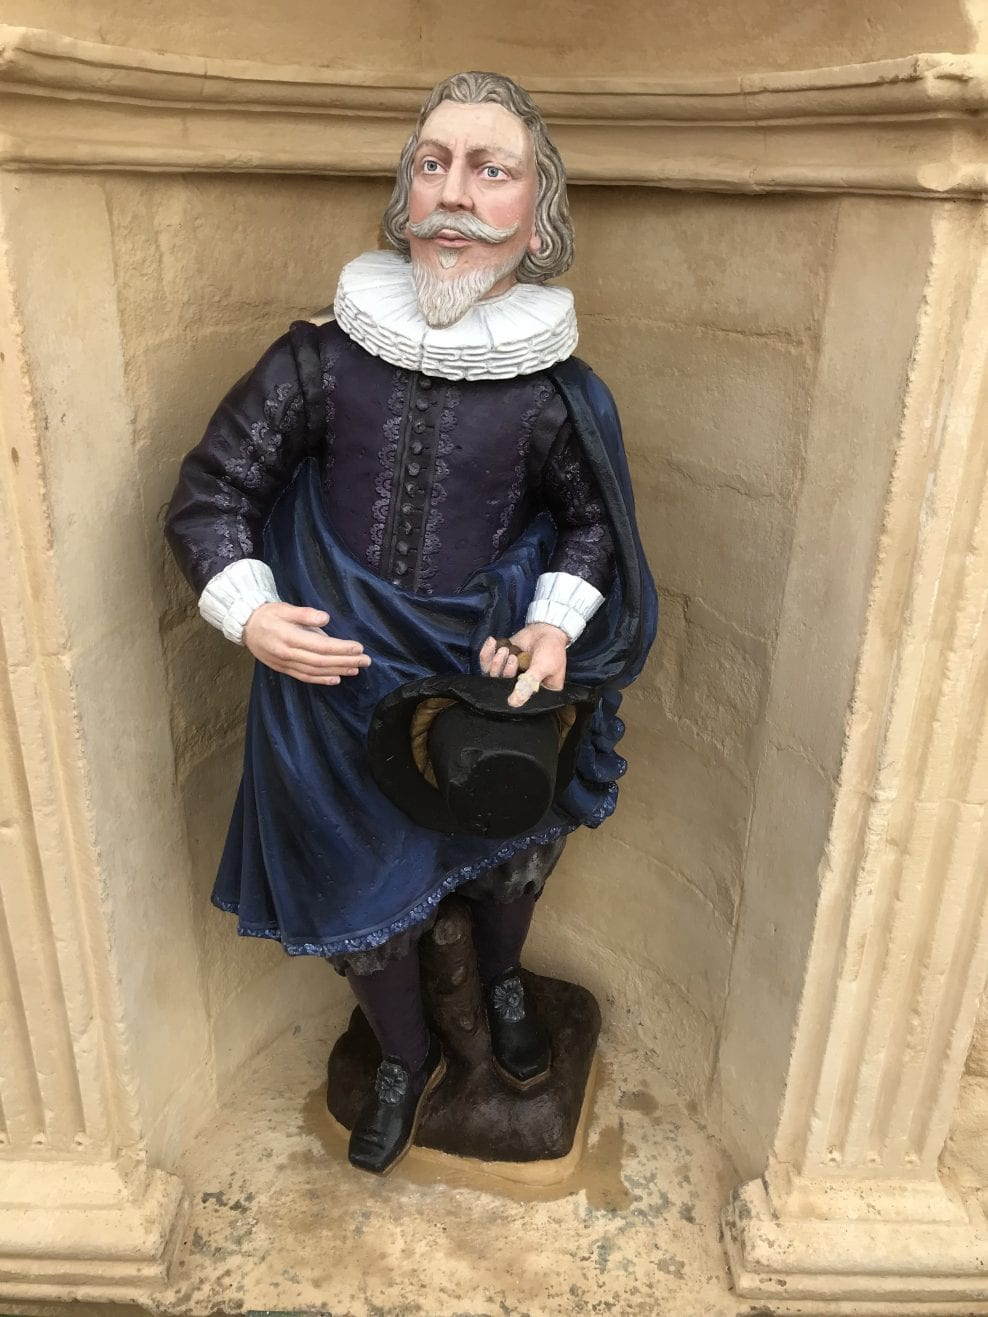 Installed polychrome sandstone statue of John Cowane in the same position as before dismantled.